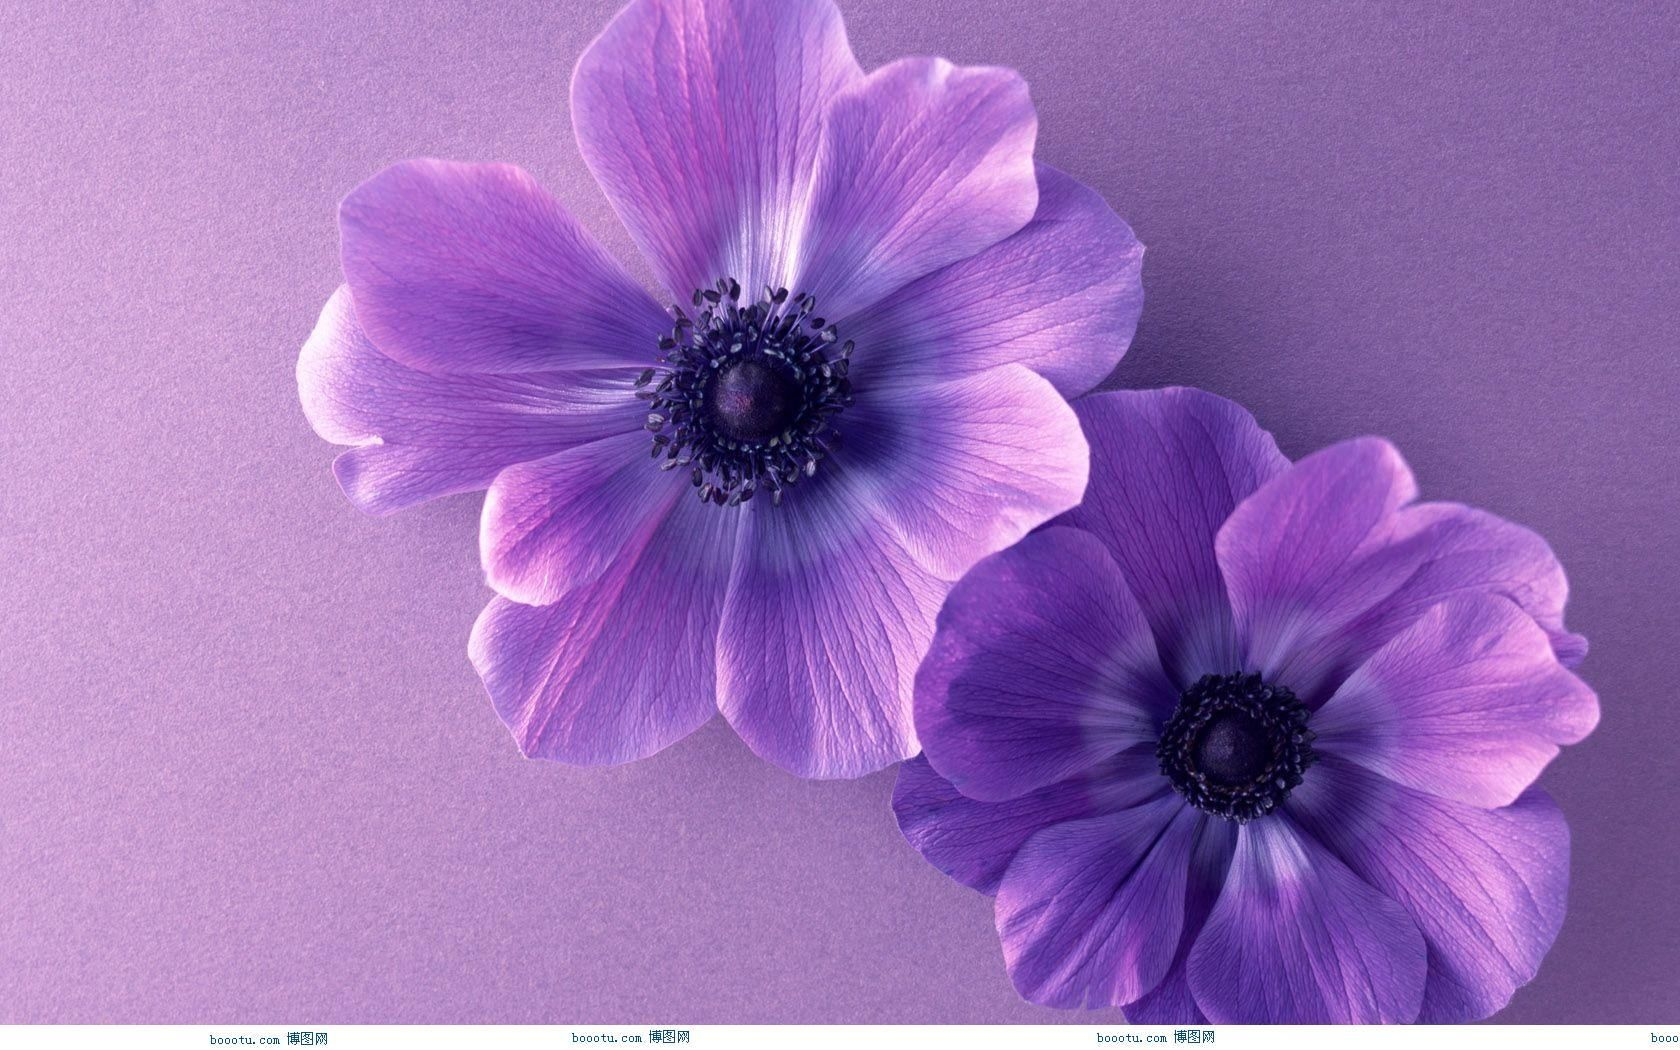 pretty flowers wallpapers wallpaper | hd wallpapers | pinterest